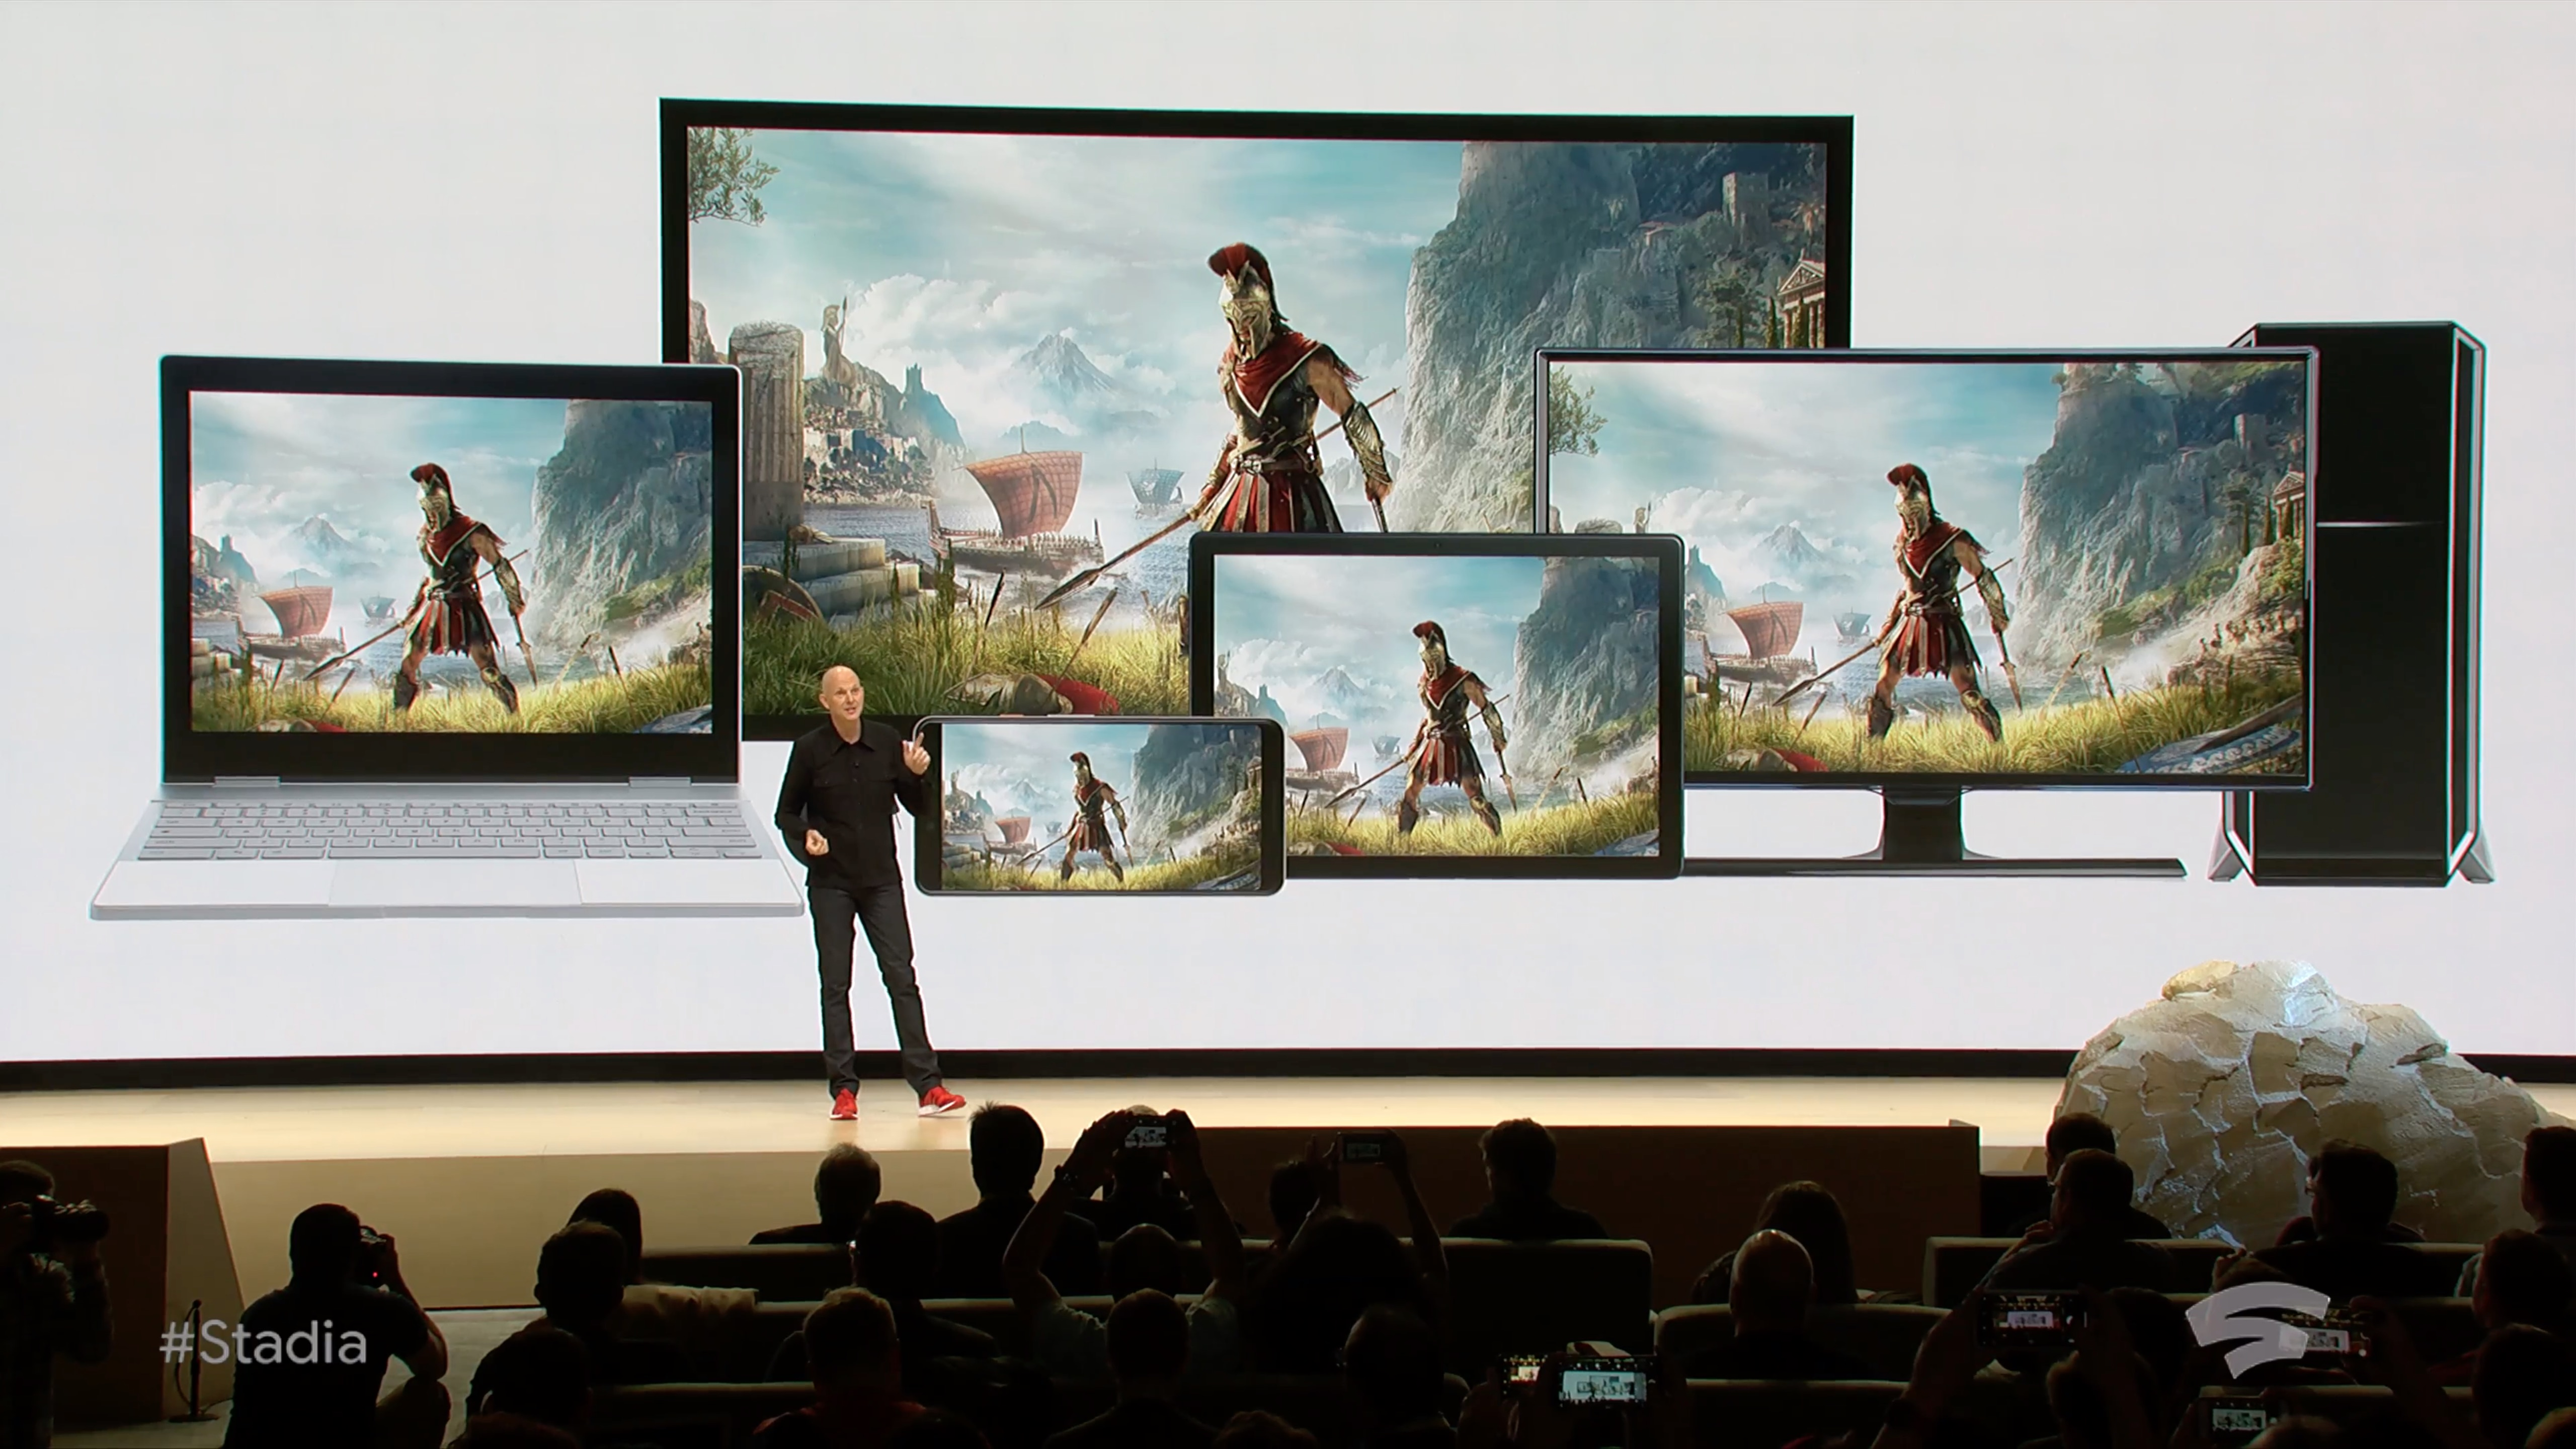 Google is shutting down its Stadia game studios